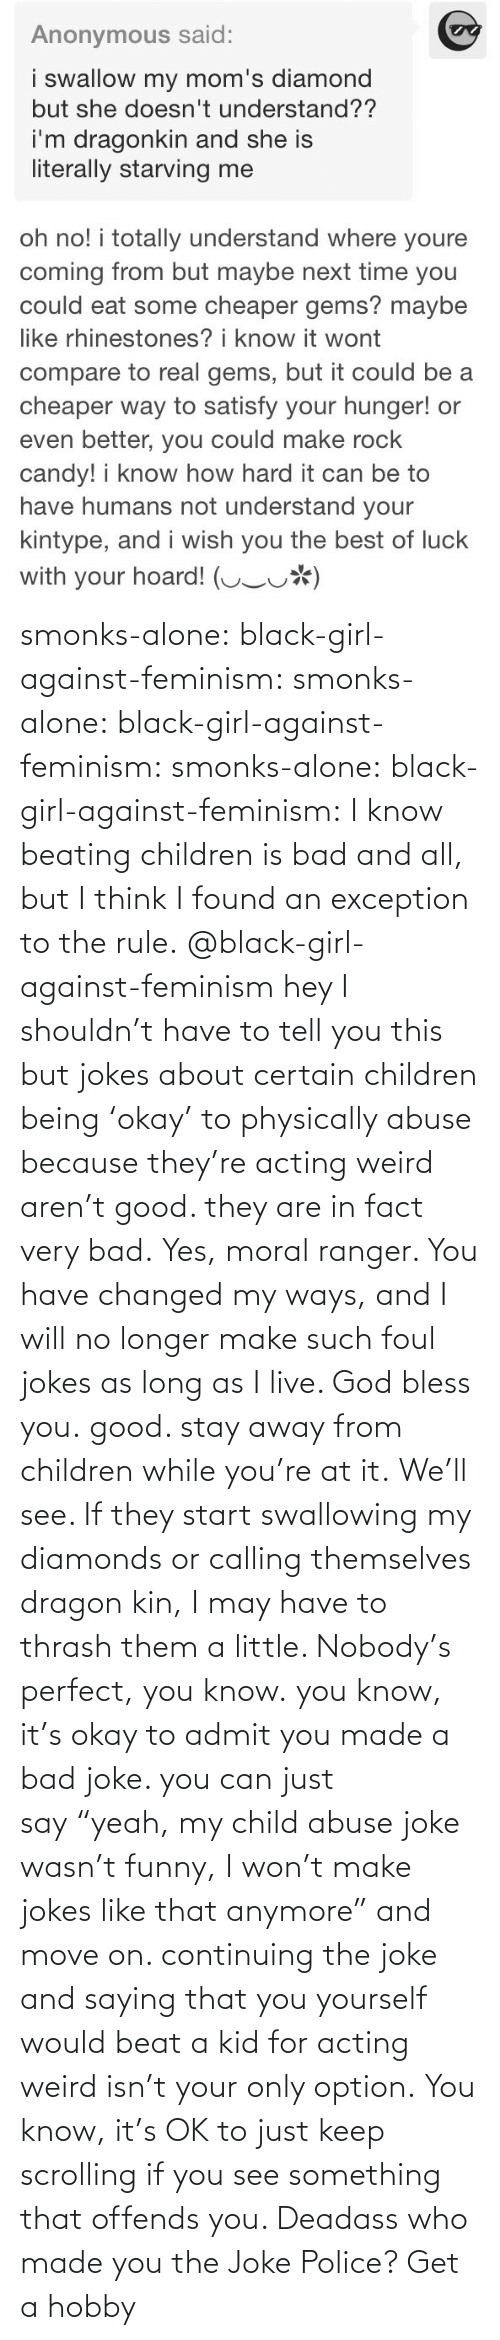 "Being alone: smonks-alone:  black-girl-against-feminism: smonks-alone:  black-girl-against-feminism:  smonks-alone:  black-girl-against-feminism: I know beating children is bad and all, but I think I found an exception to the rule. @black-girl-against-feminism hey I shouldn't have to tell you this but jokes about certain children being 'okay' to physically abuse because they're acting weird aren't good. they are in fact very bad.  Yes, moral ranger. You have changed my ways, and I will no longer make such foul jokes as long as I live. God bless you.  good. stay away from children while you're at it.  We'll see. If they start swallowing my diamonds or calling themselves dragon kin, I may have to thrash them a little. Nobody's perfect, you know.  you know, it's okay to admit you made a bad joke. you can just say ""yeah, my child abuse joke wasn't funny, I won't make jokes like that anymore"" and move on. continuing the joke and saying that you yourself would beat a kid for acting weird isn't your only option.   You know, it's OK to just keep scrolling if you see something that offends you. Deadass who made you the Joke Police? Get a hobby"